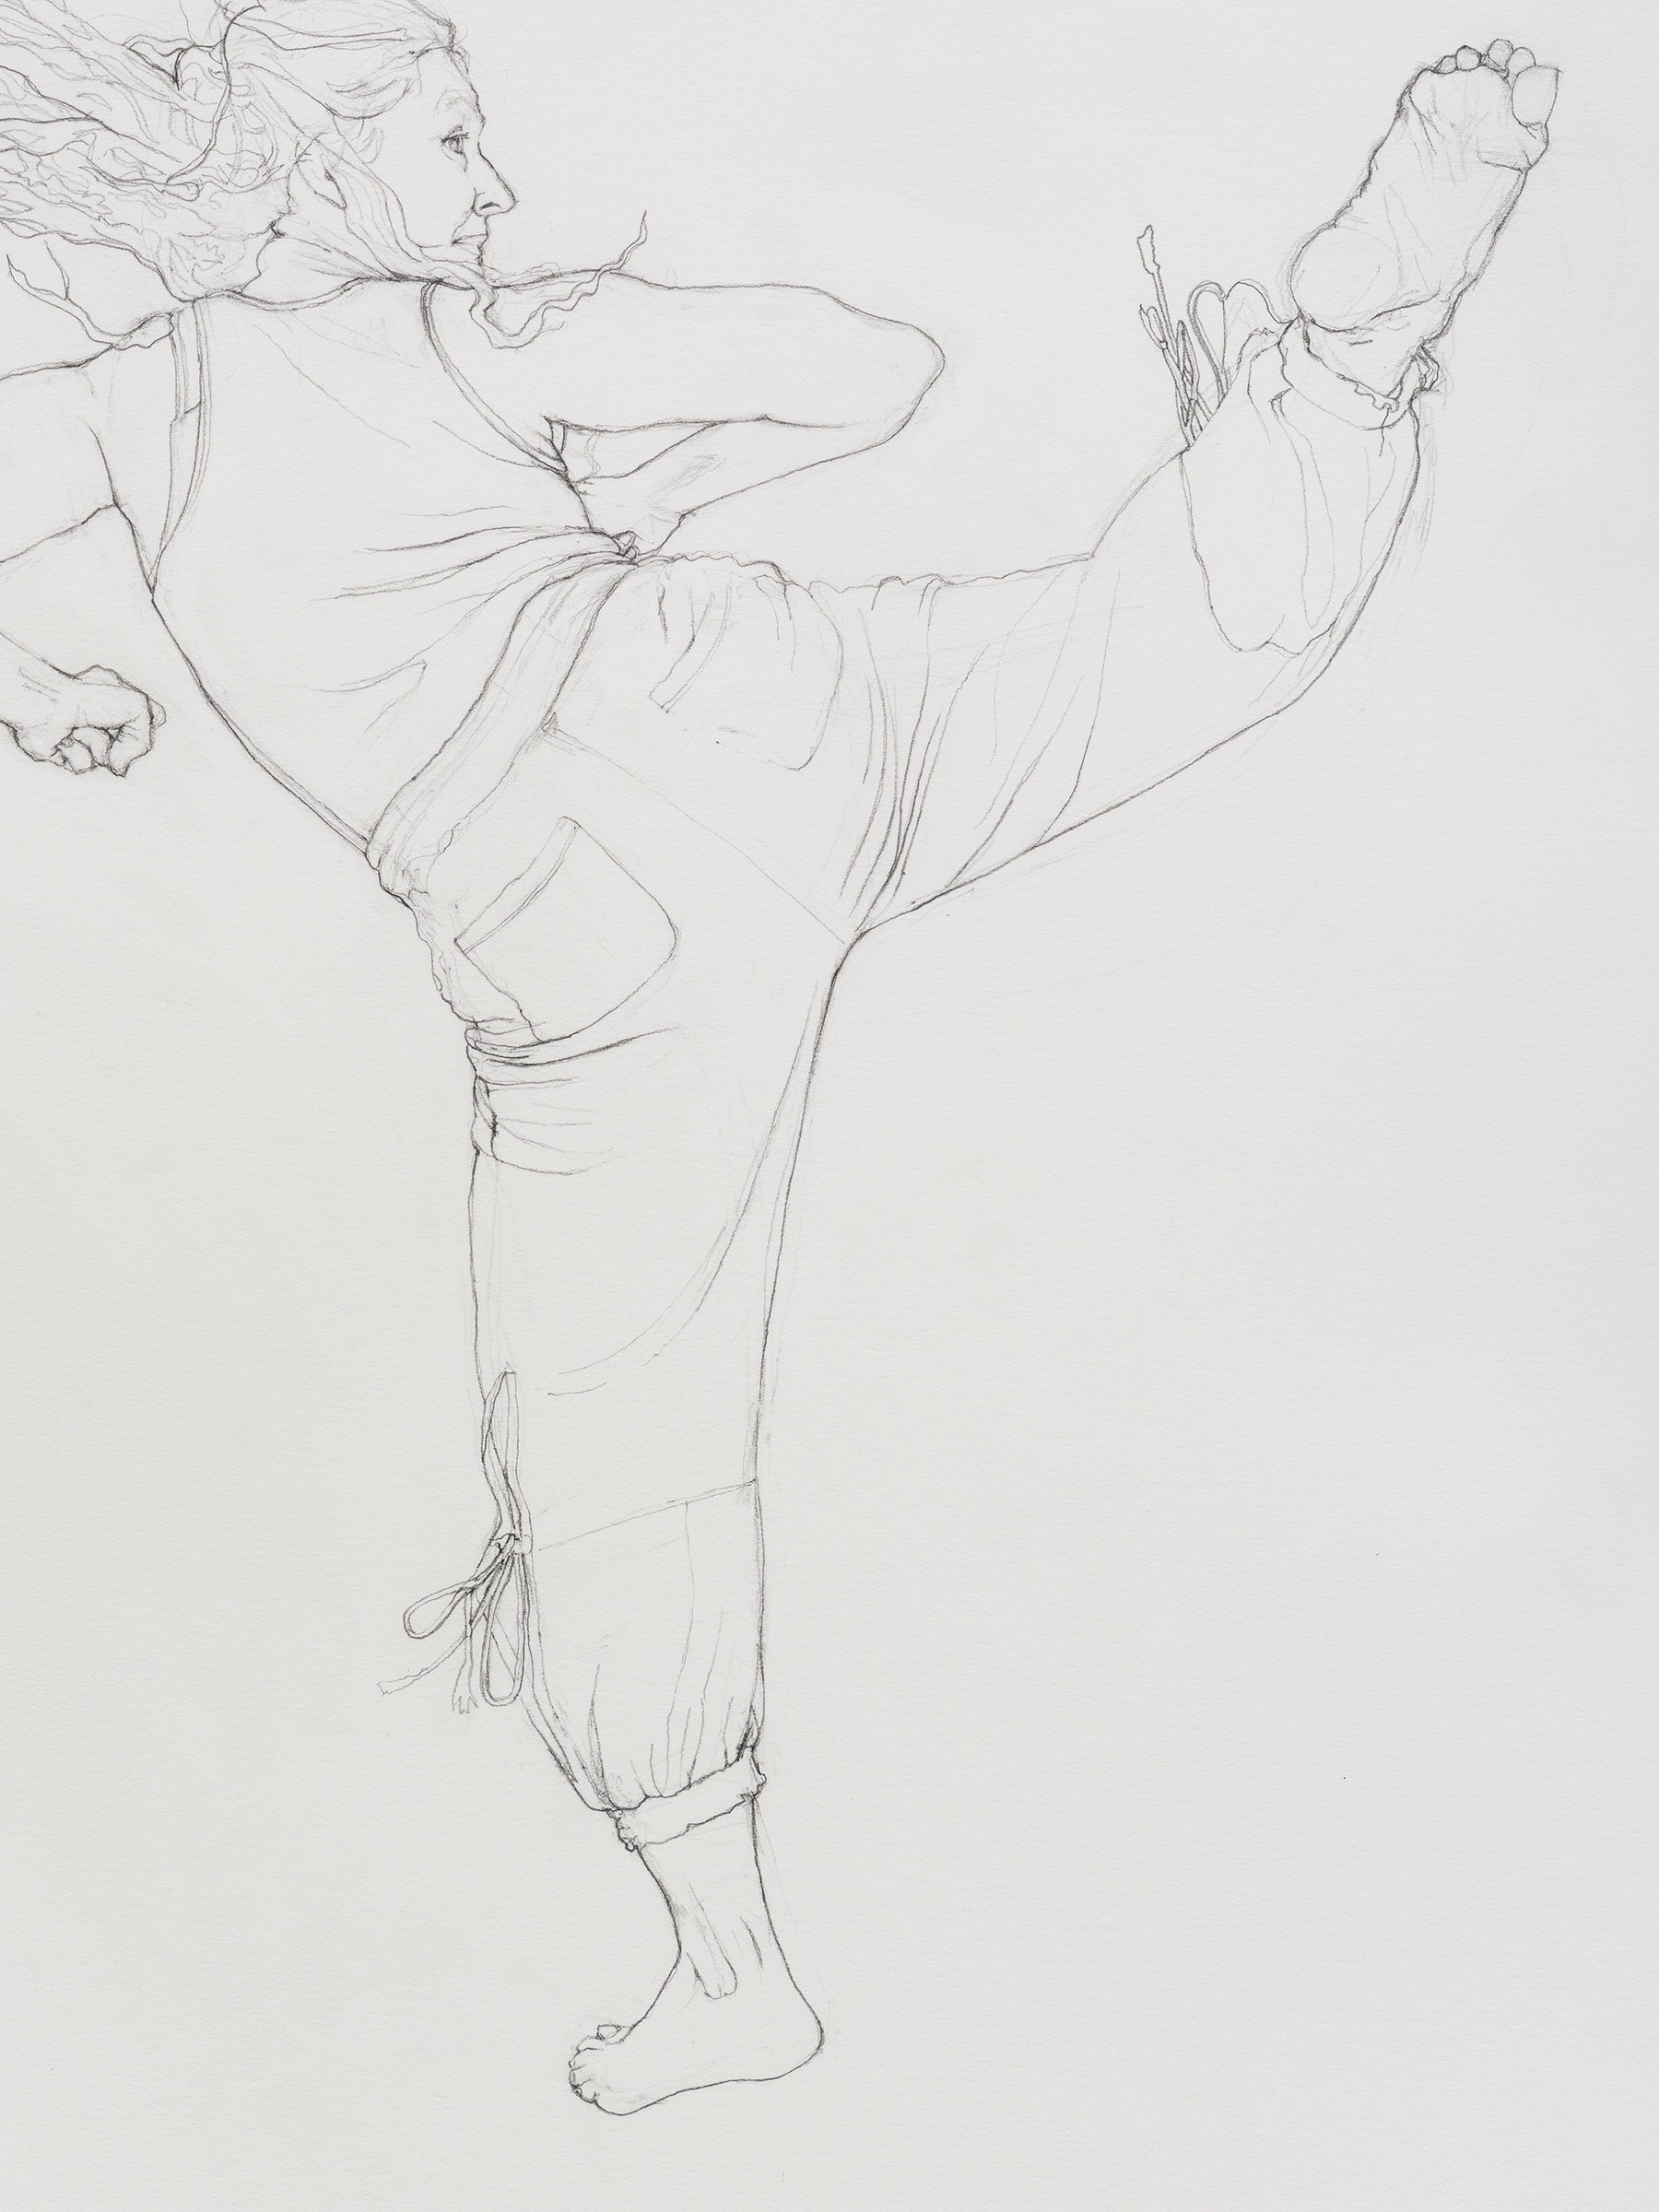 """Andrea Bowers """"Self-Defense Drawings - Study of Victoriya,"""" 2021 Graphite on paper 22 ³⁄₈"""" x 15"""" [HxW] (56.81 x 38.1 cm) paper size; 25 ¹⁄₄"""" x 17 ³⁄₄"""" x 2"""" [HxWxD] (64.13 x 45.08 x 5.08 cm) framed Inventory #BOW593 Courtesy of the artist and Vielmetter Los Angeles Photo credit: Jeff McLane"""